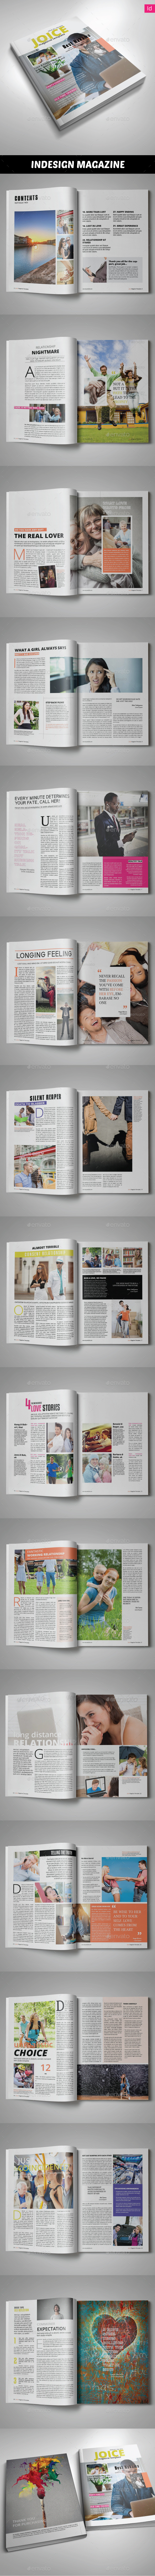 Joice Magazine Template | Issue 20 - Magazines Print Templates